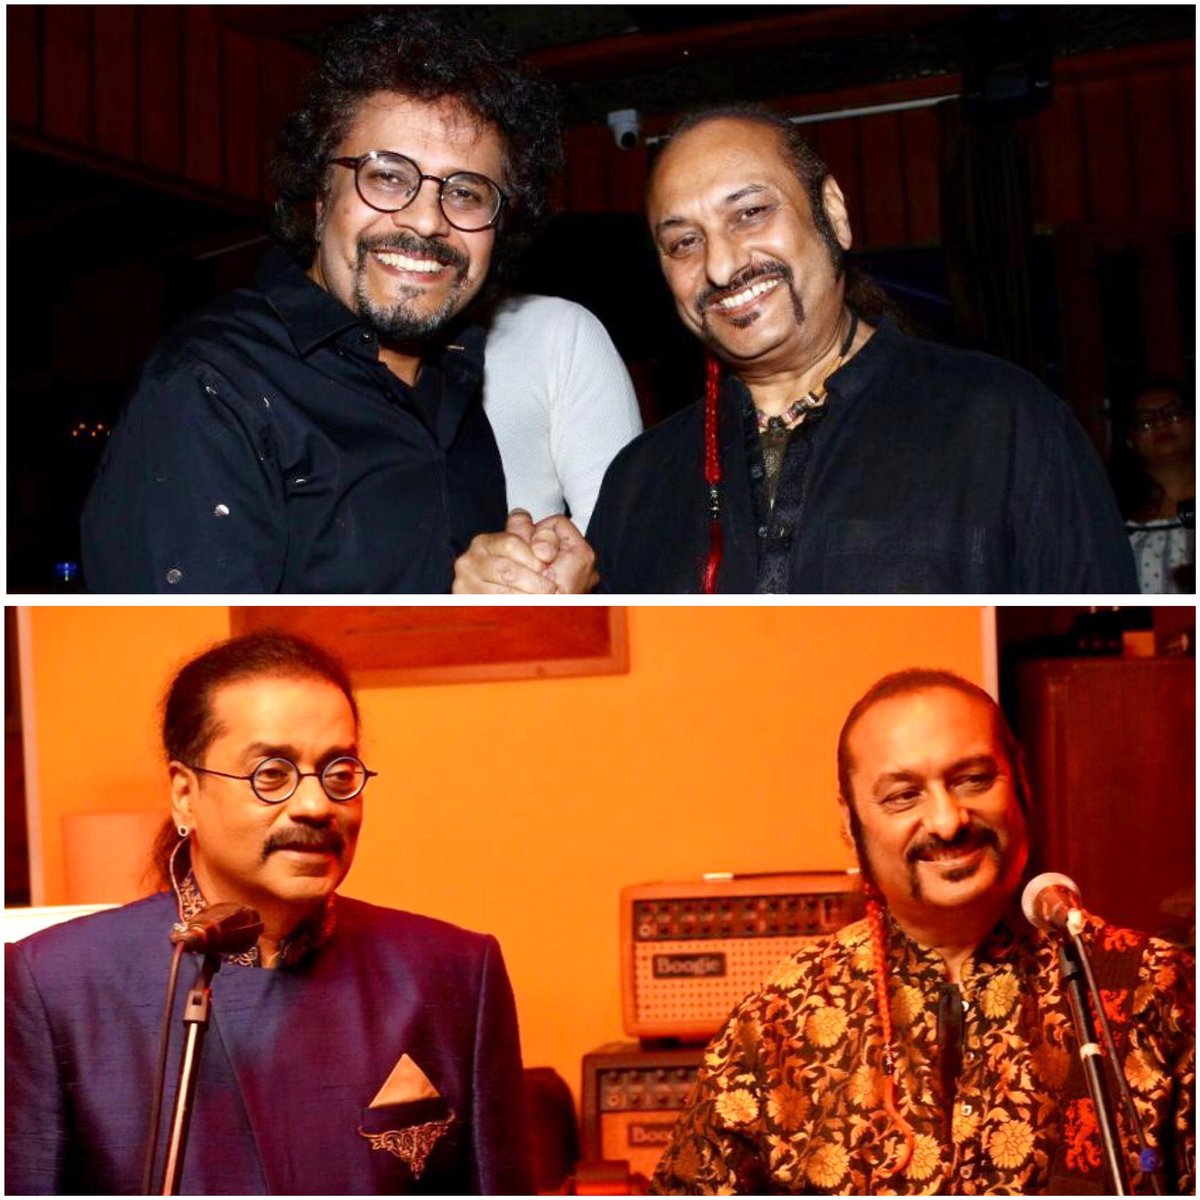 Big Congratulations to my Bros @bickramghosh & @SingerHariharan for #Ishq 🙌🏻❤️Big ups to @sufiscore for the amaze collaboration & event! Thanks for having me✨@SingerHariharan was so caught up, we didn't get to click a picture,but the #ColonialCousins are never out of pics😜